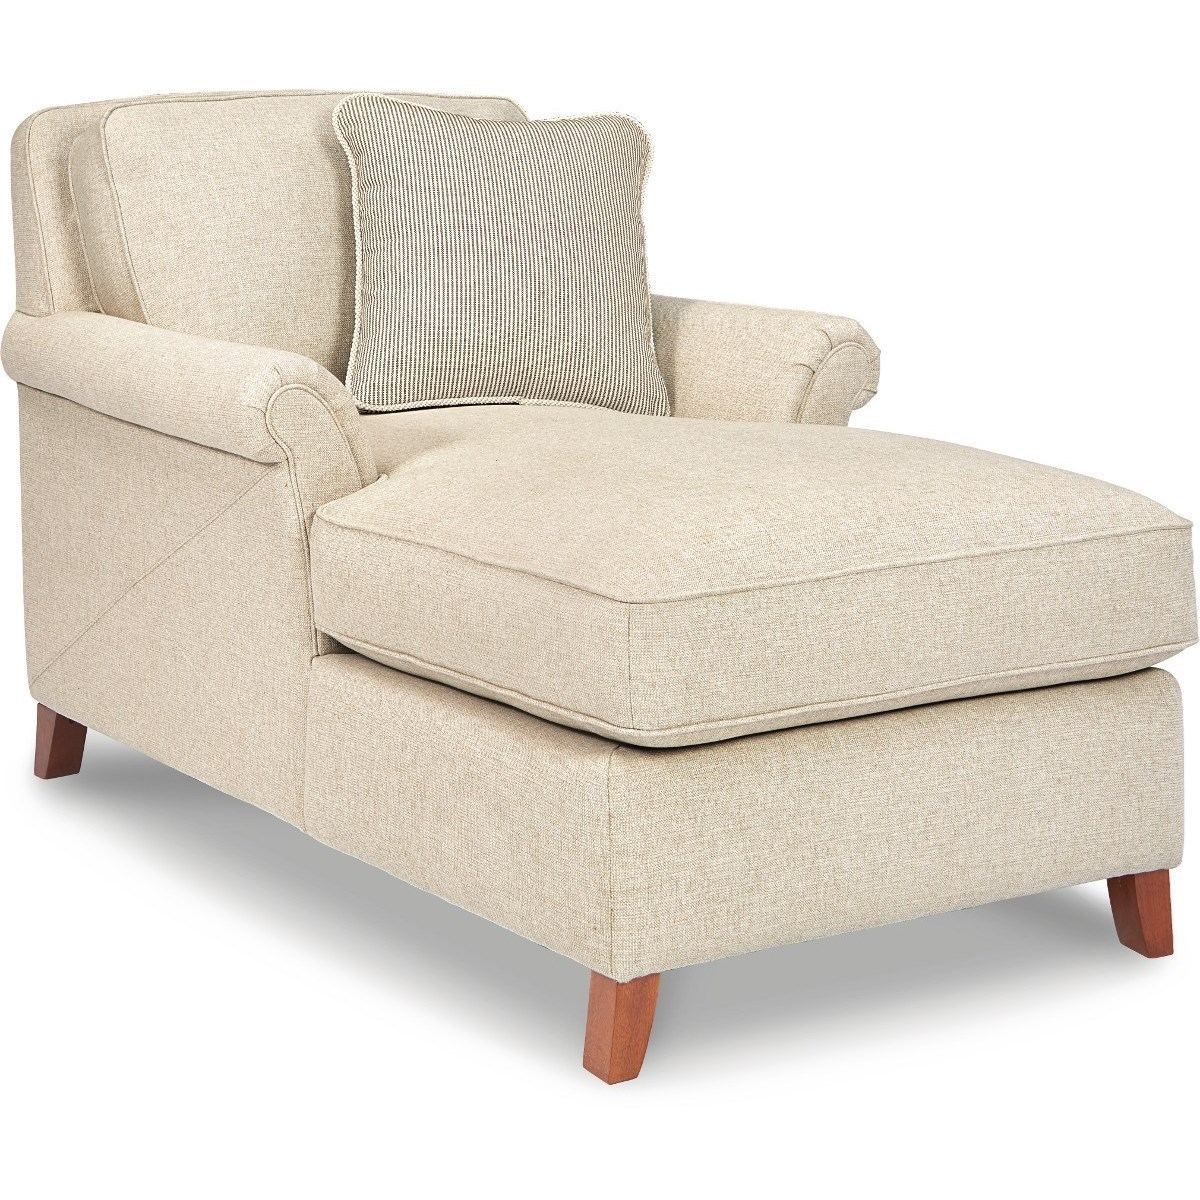 Chaise Z La Z Boy Phoebe Transitional Flared Arm Chaise Lounge Conlin S